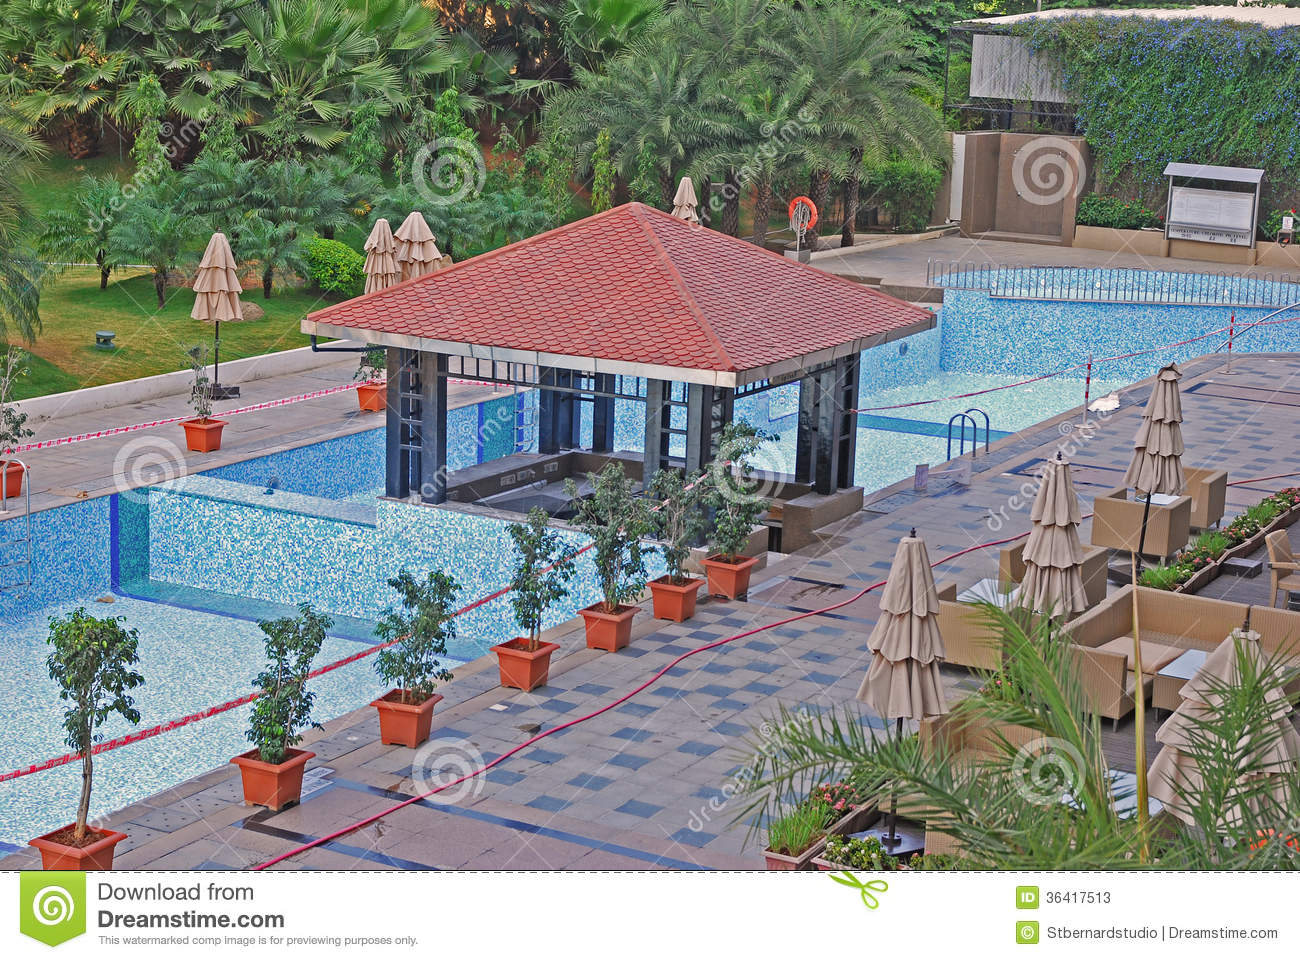 Maintenance of swimming pool stock photos image 36417513 - Hotel with swimming pool on balcony ...